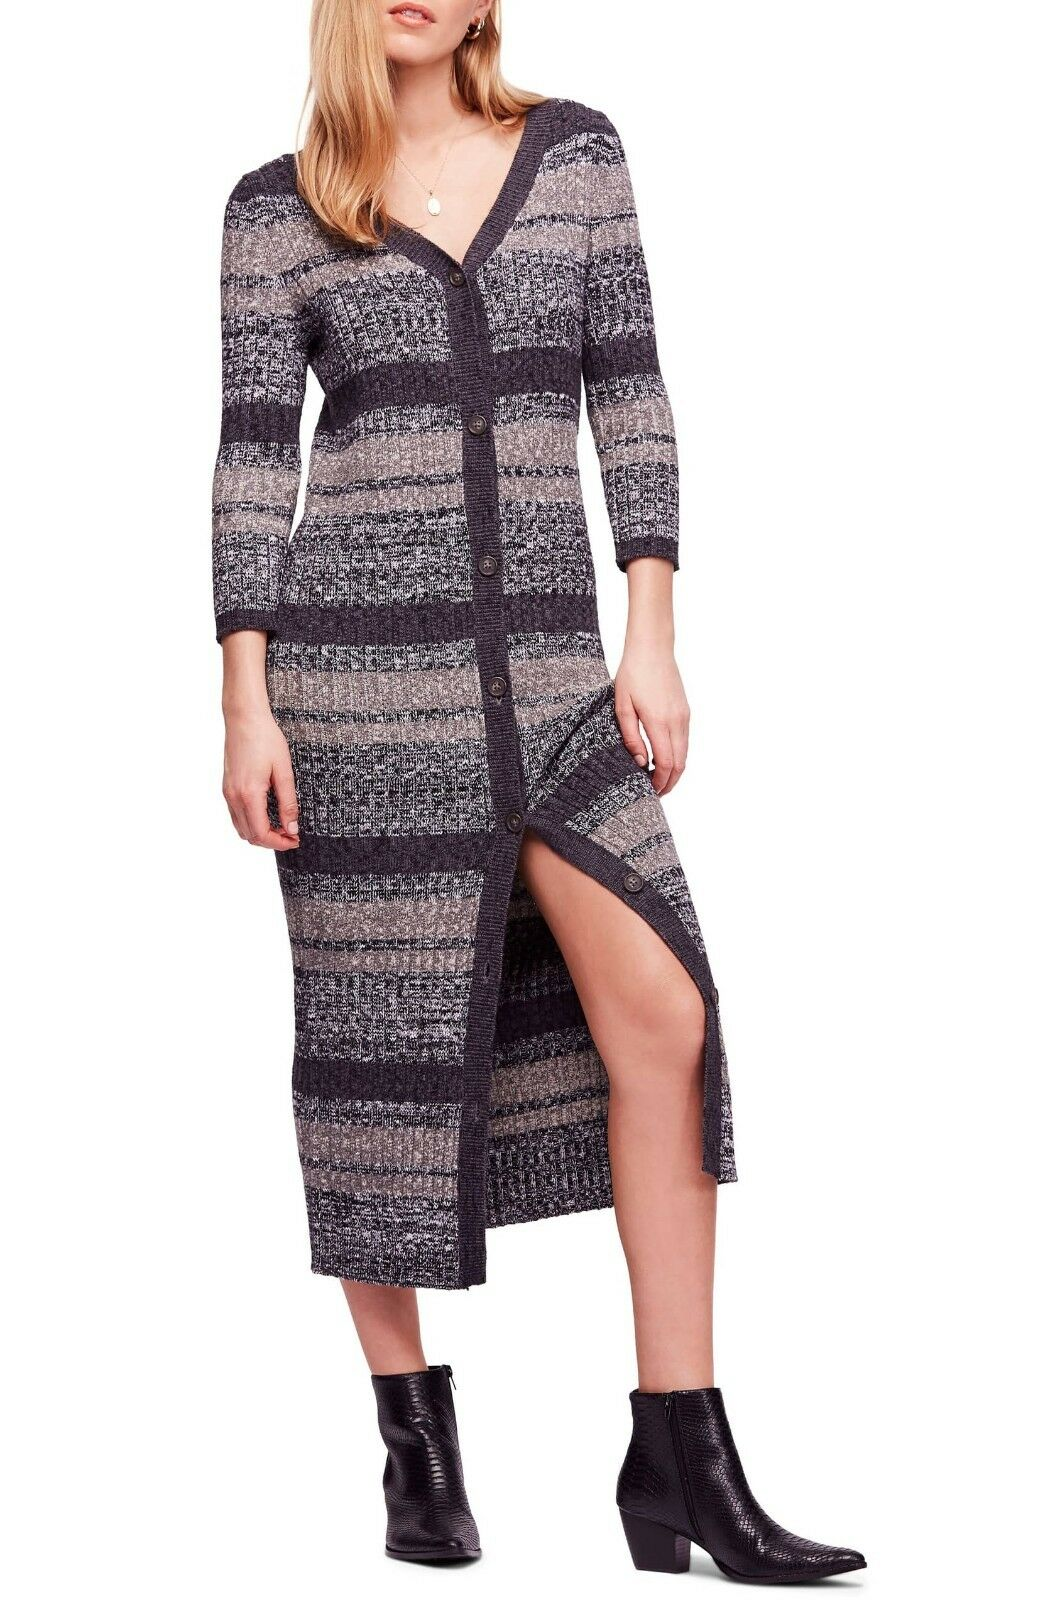 Free People Cozy Up Cardigan Midi Dress MSRP MSRP MSRP  168.00 a3a0b6